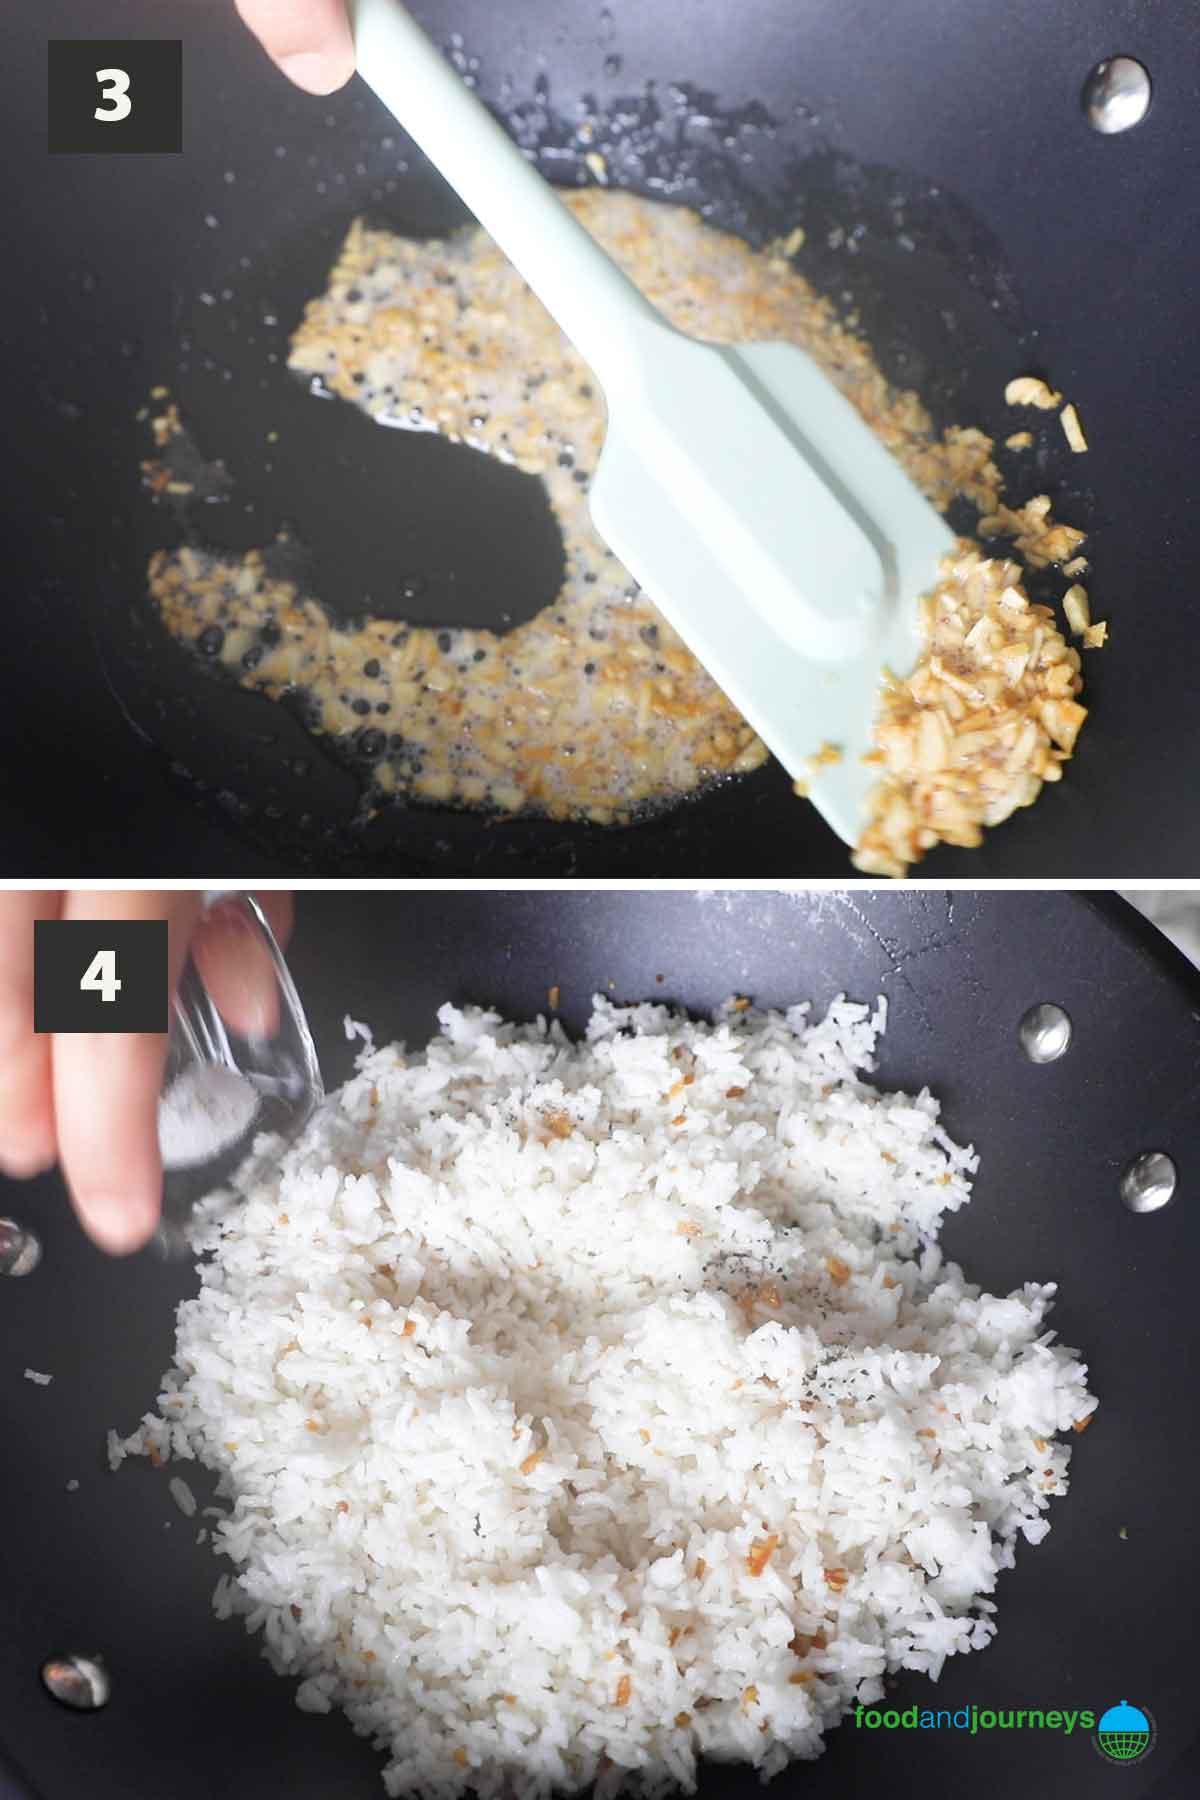 Latest second part of a collage showing step by step process to make garlic fried rice.